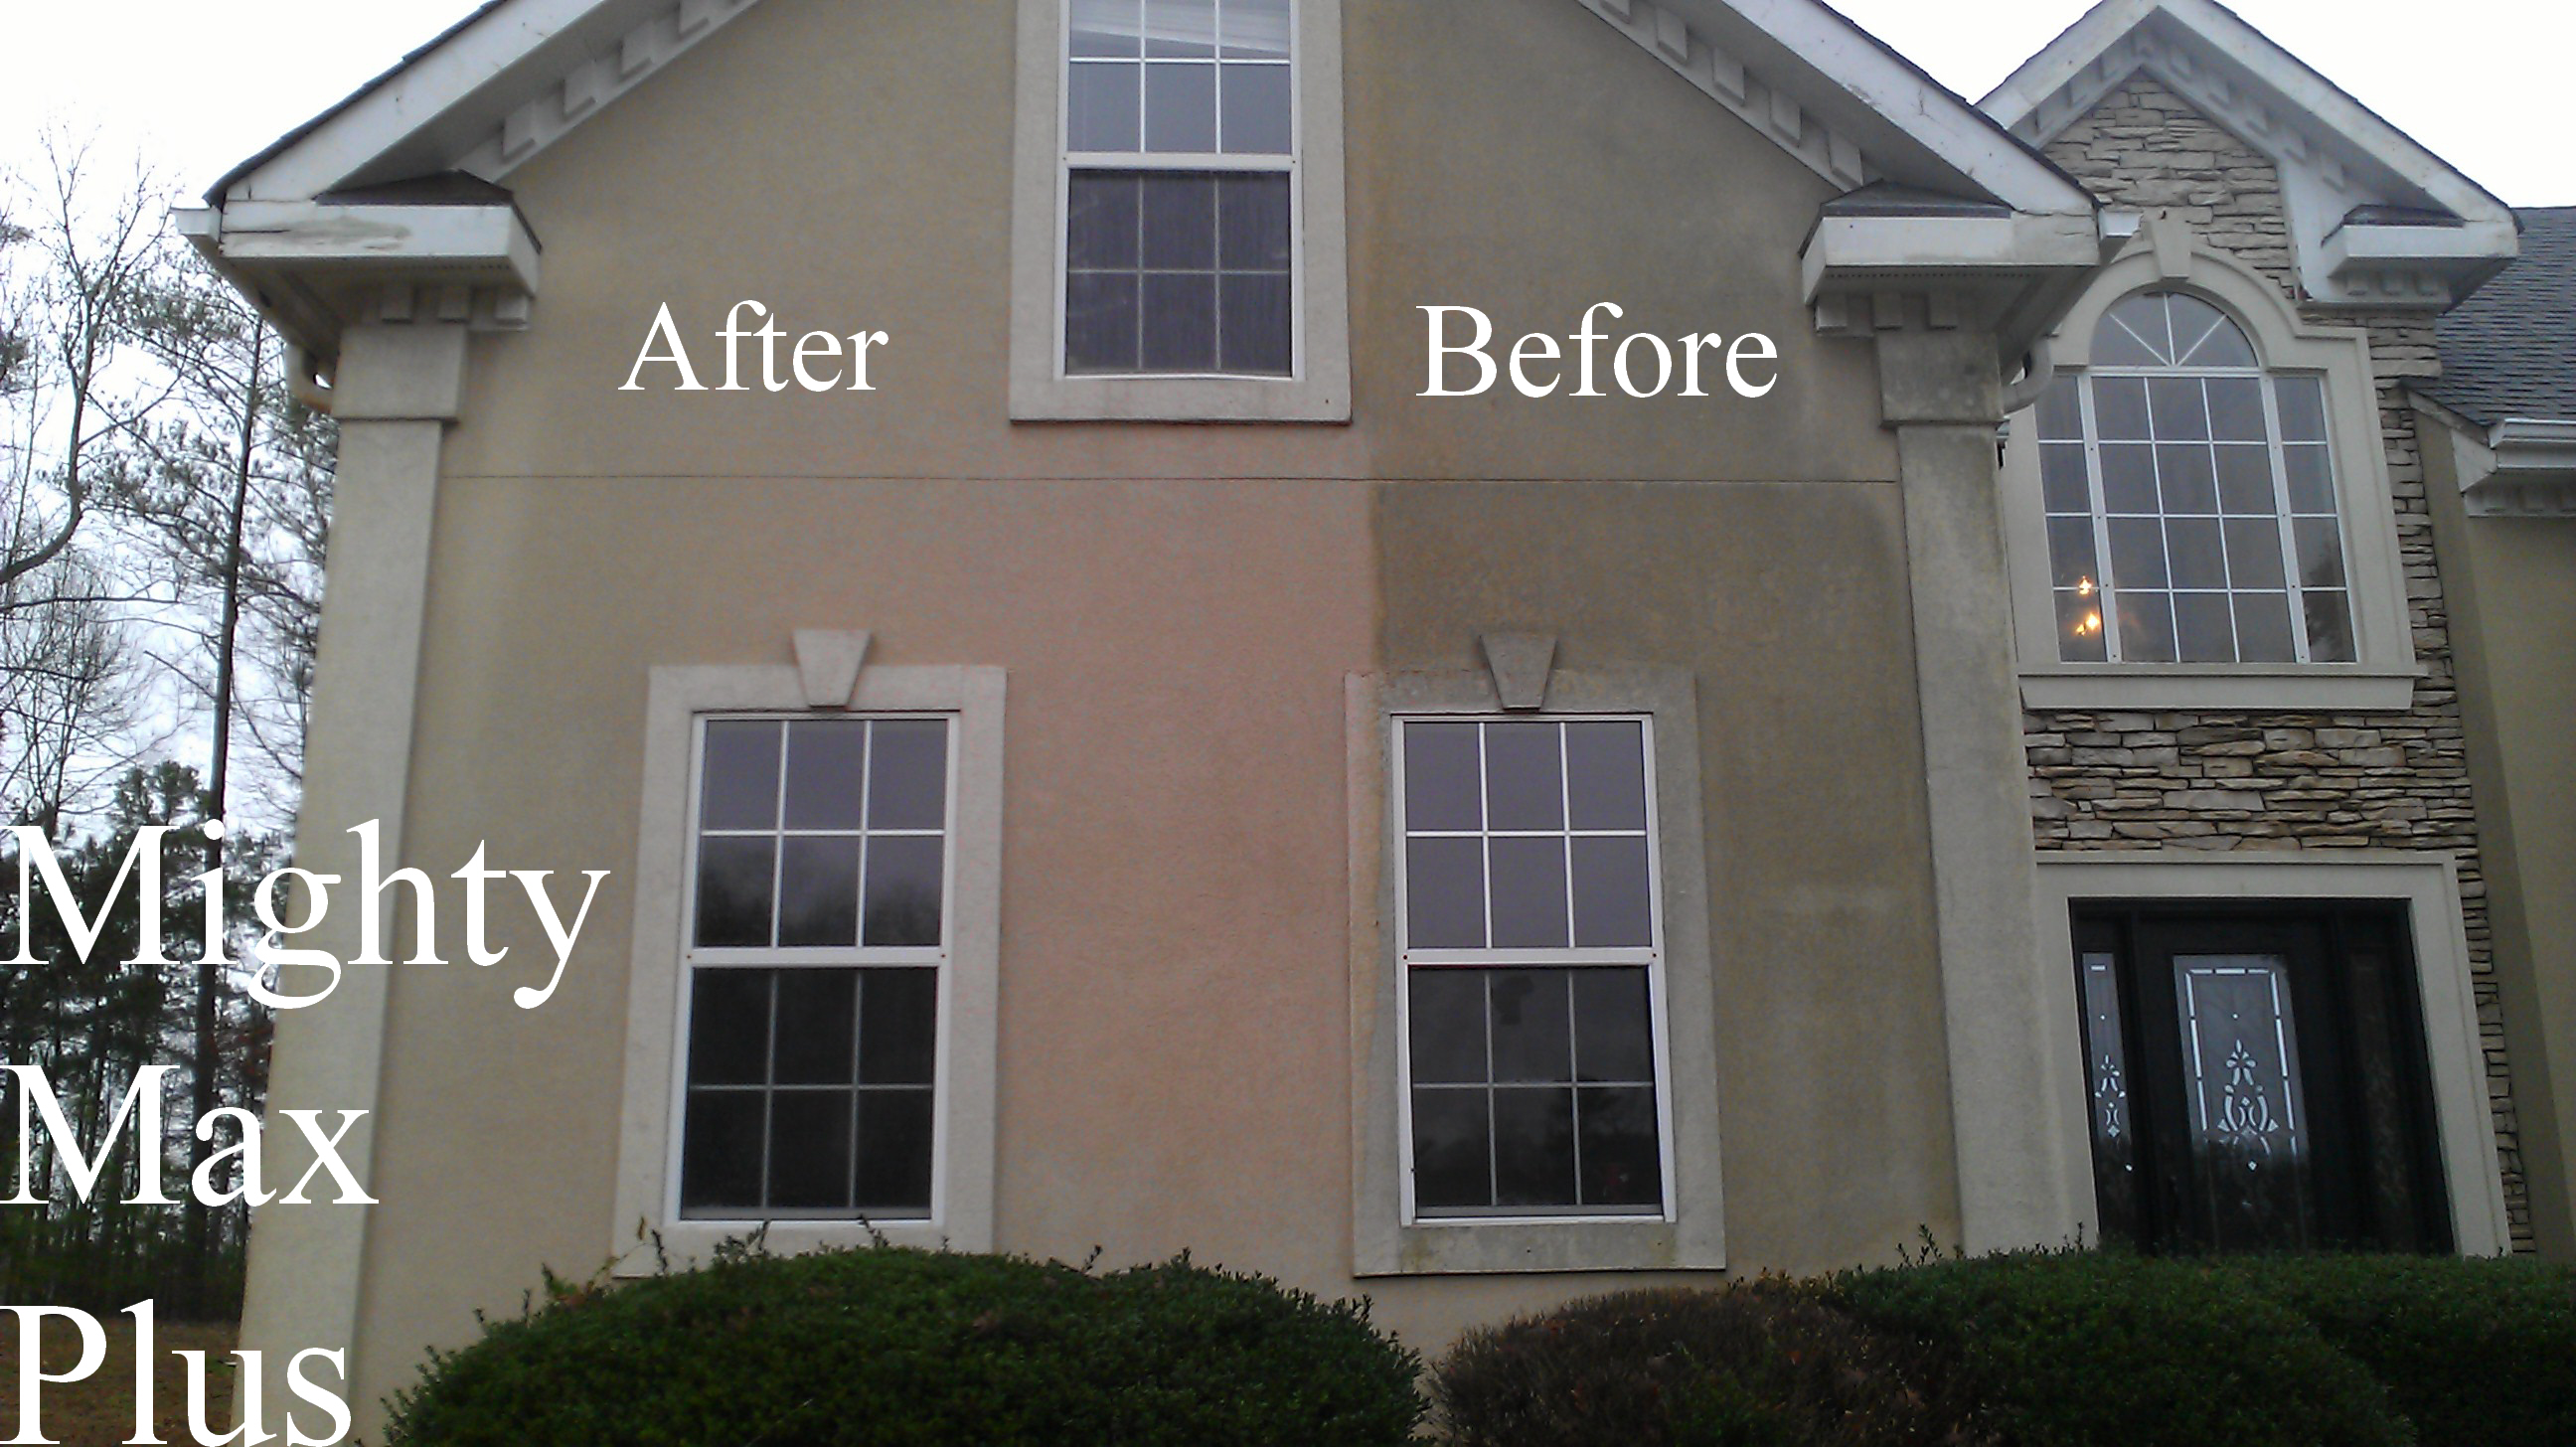 Image of house exterior before and after cleaning